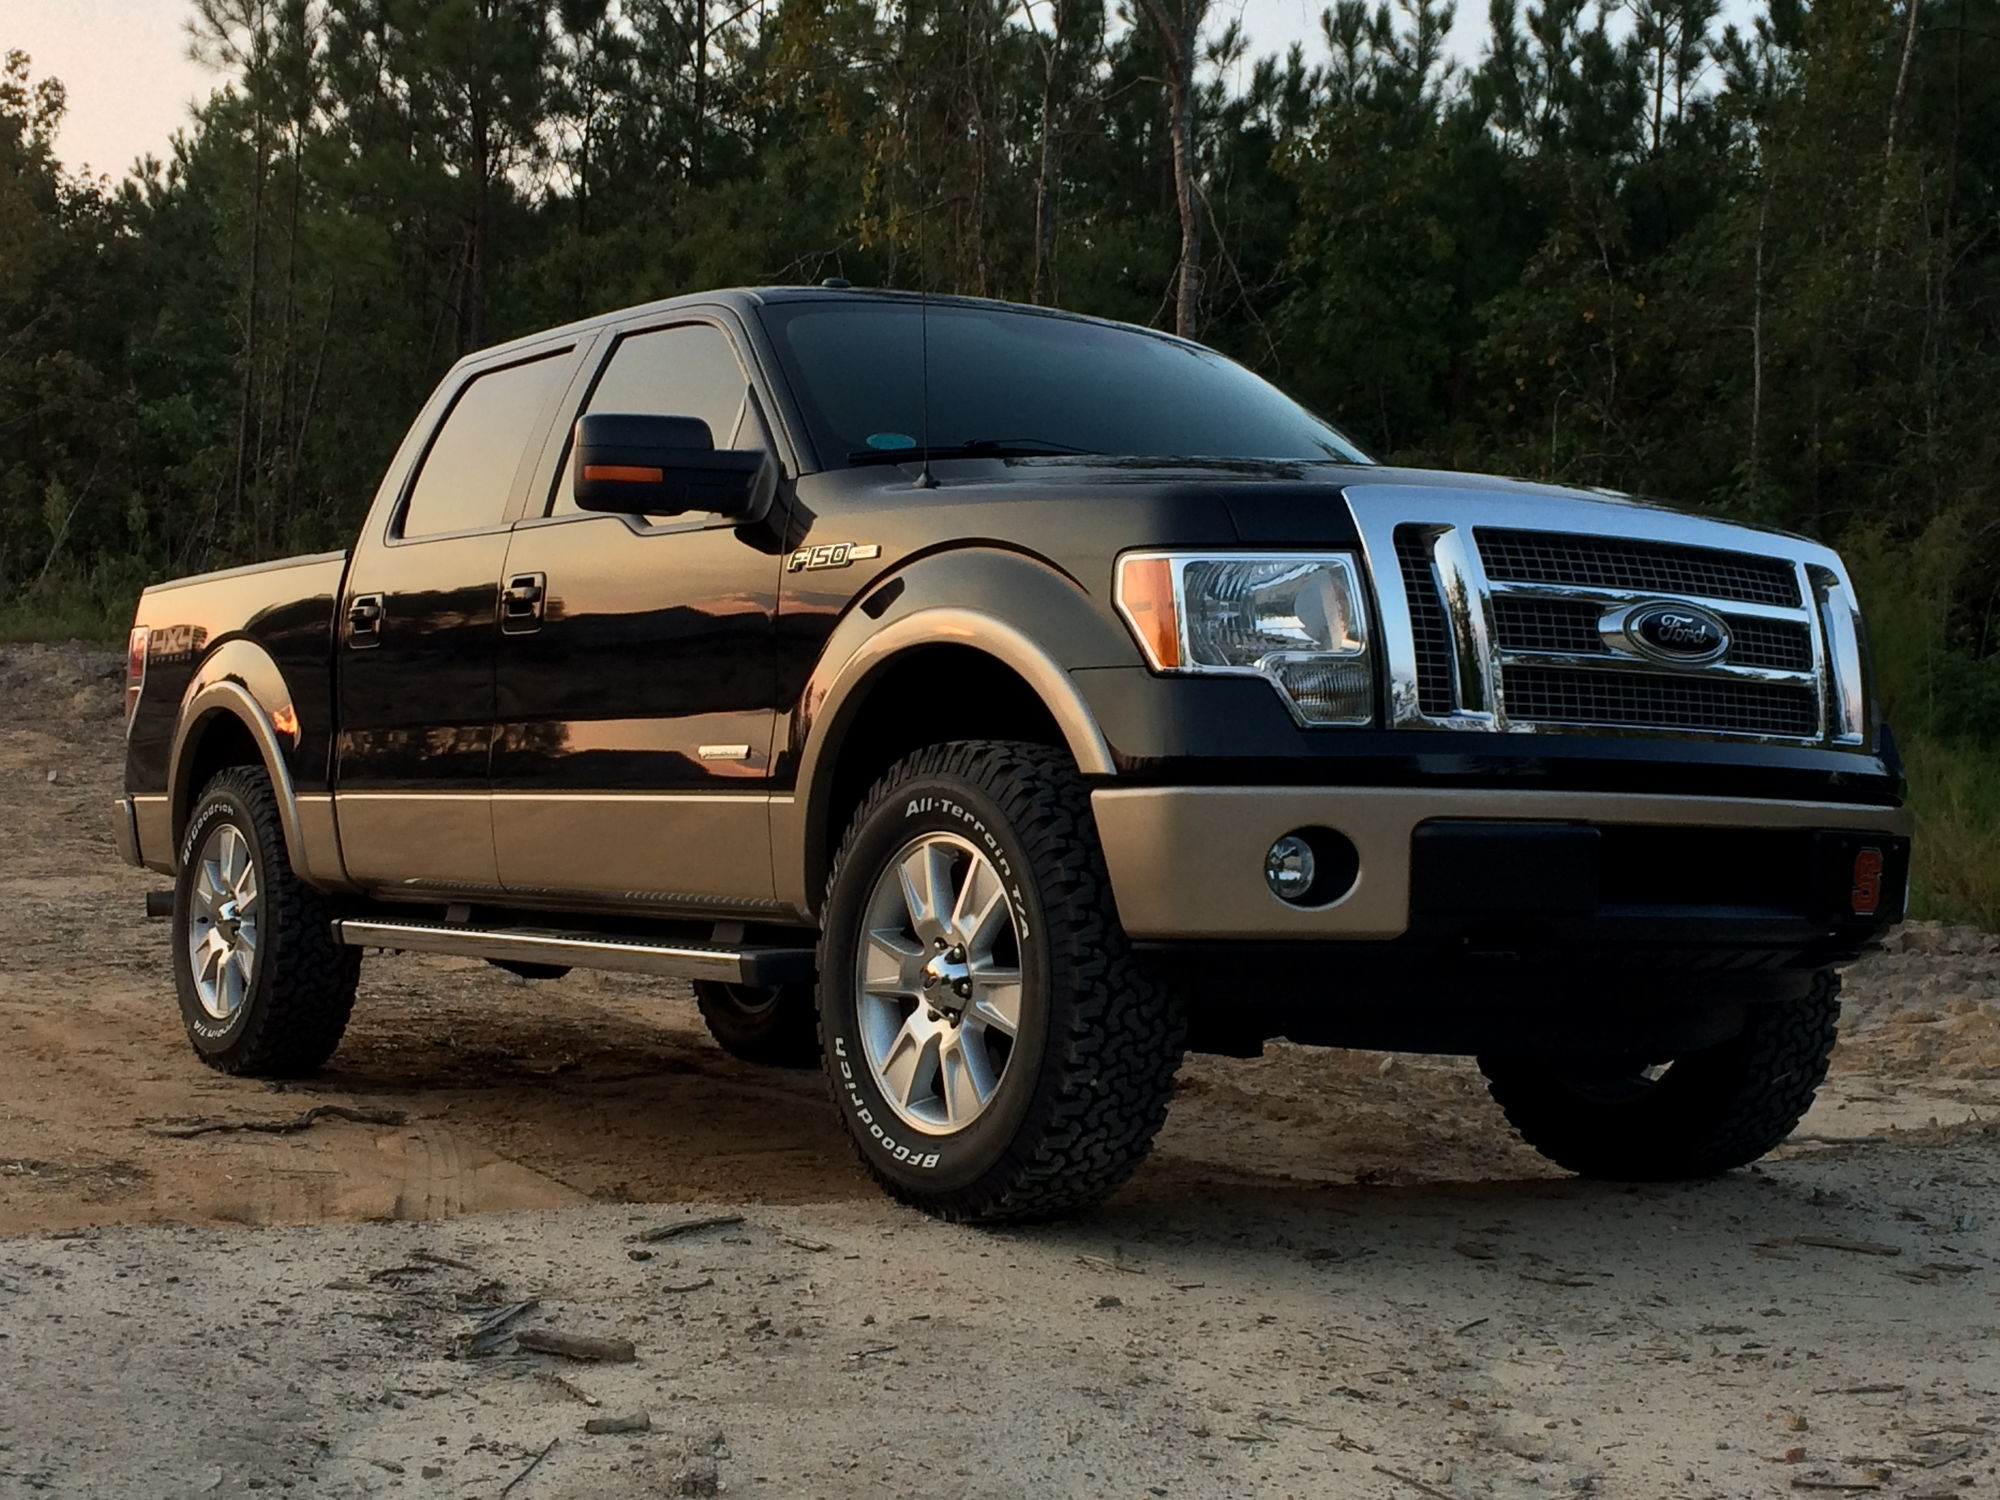 F 65r20 >> 275/65r20??? - Page 2 - Ford F150 Forum - Community of Ford Truck Fans